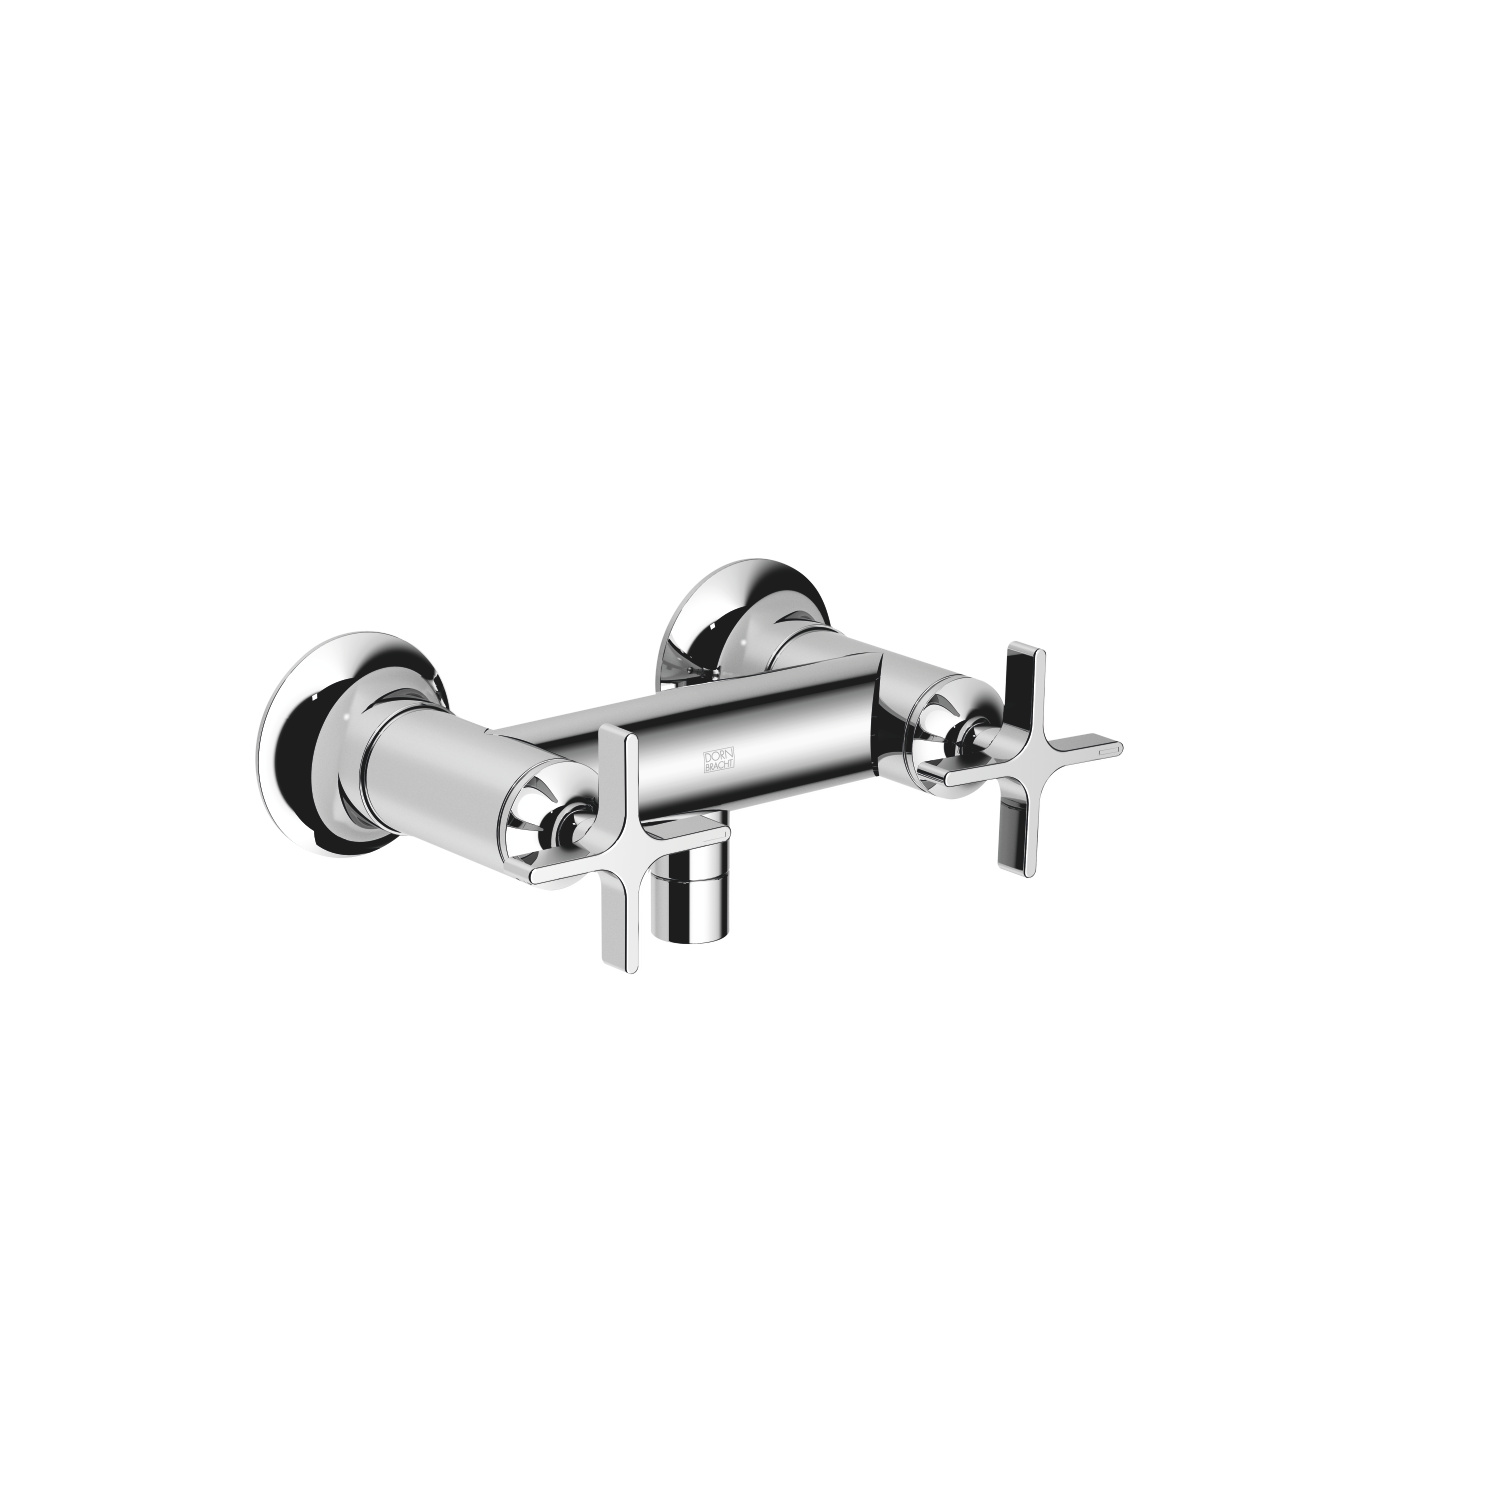 Shower mixer for wall-mounted installation - polished chrome